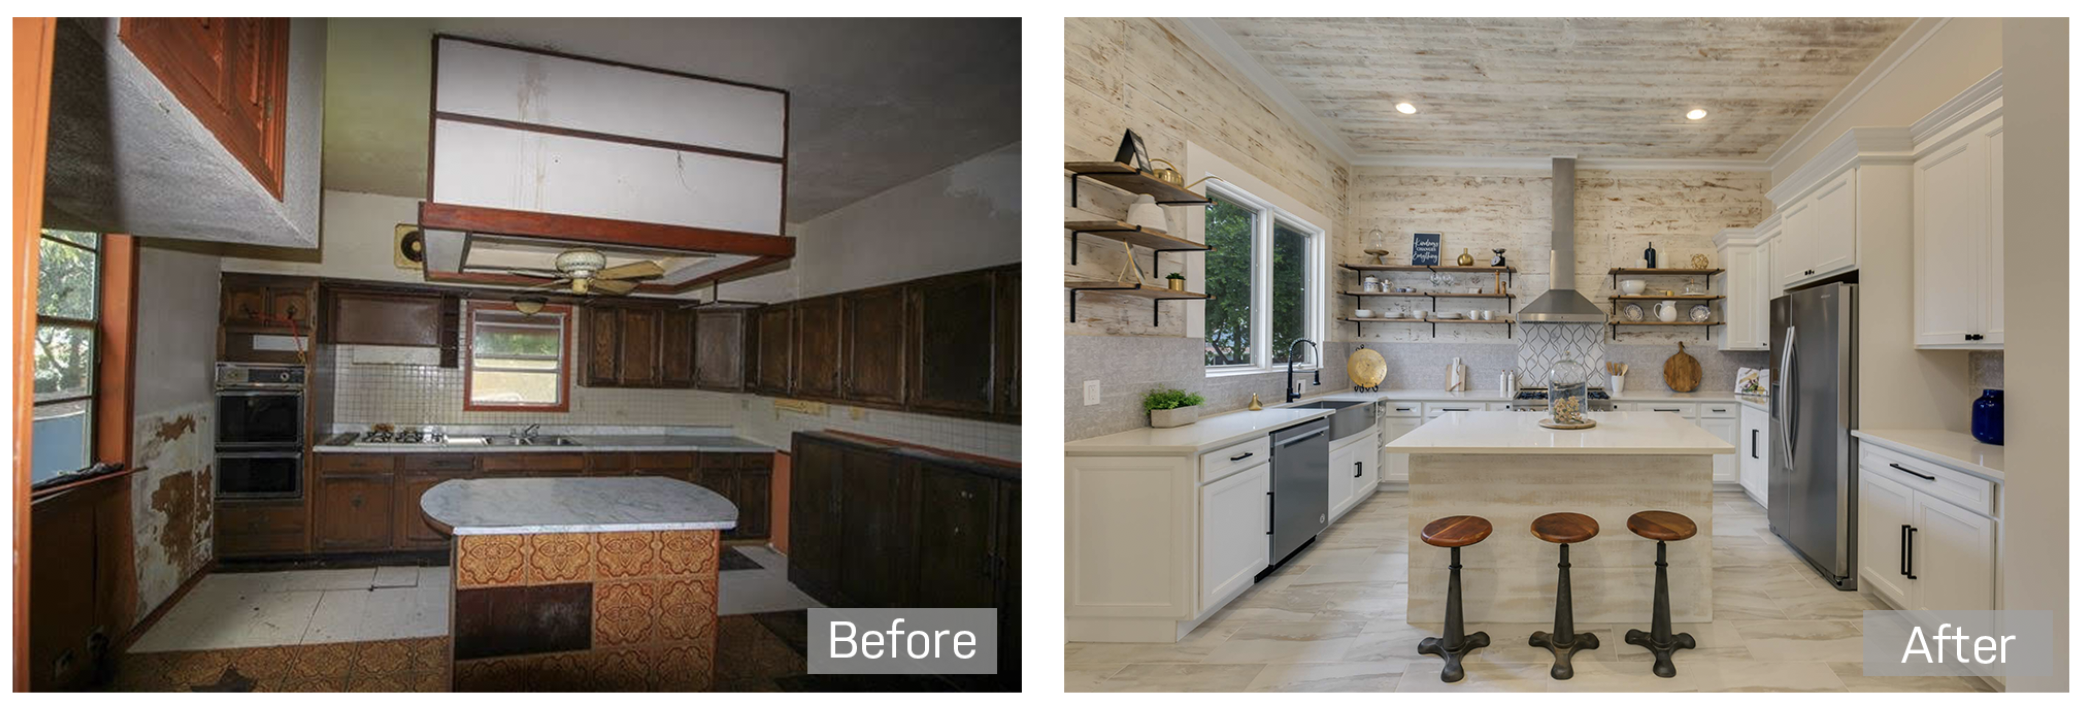 517 Burleson Before & After Kitchen.png